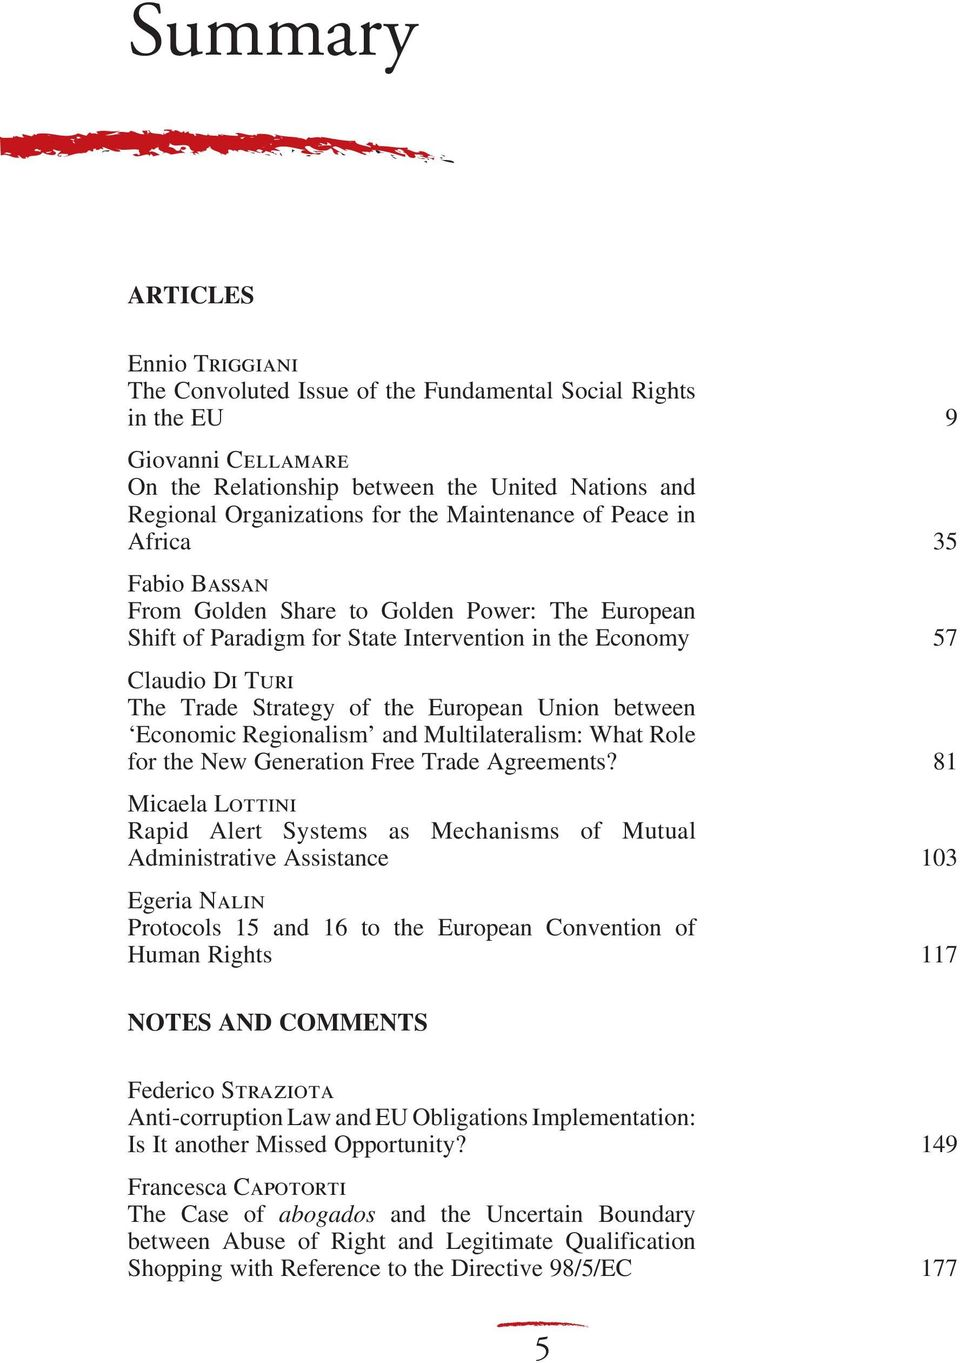 European Union between Economic Regionalism and Multilateralism: What Role for the New Generation Free Trade Agreements?